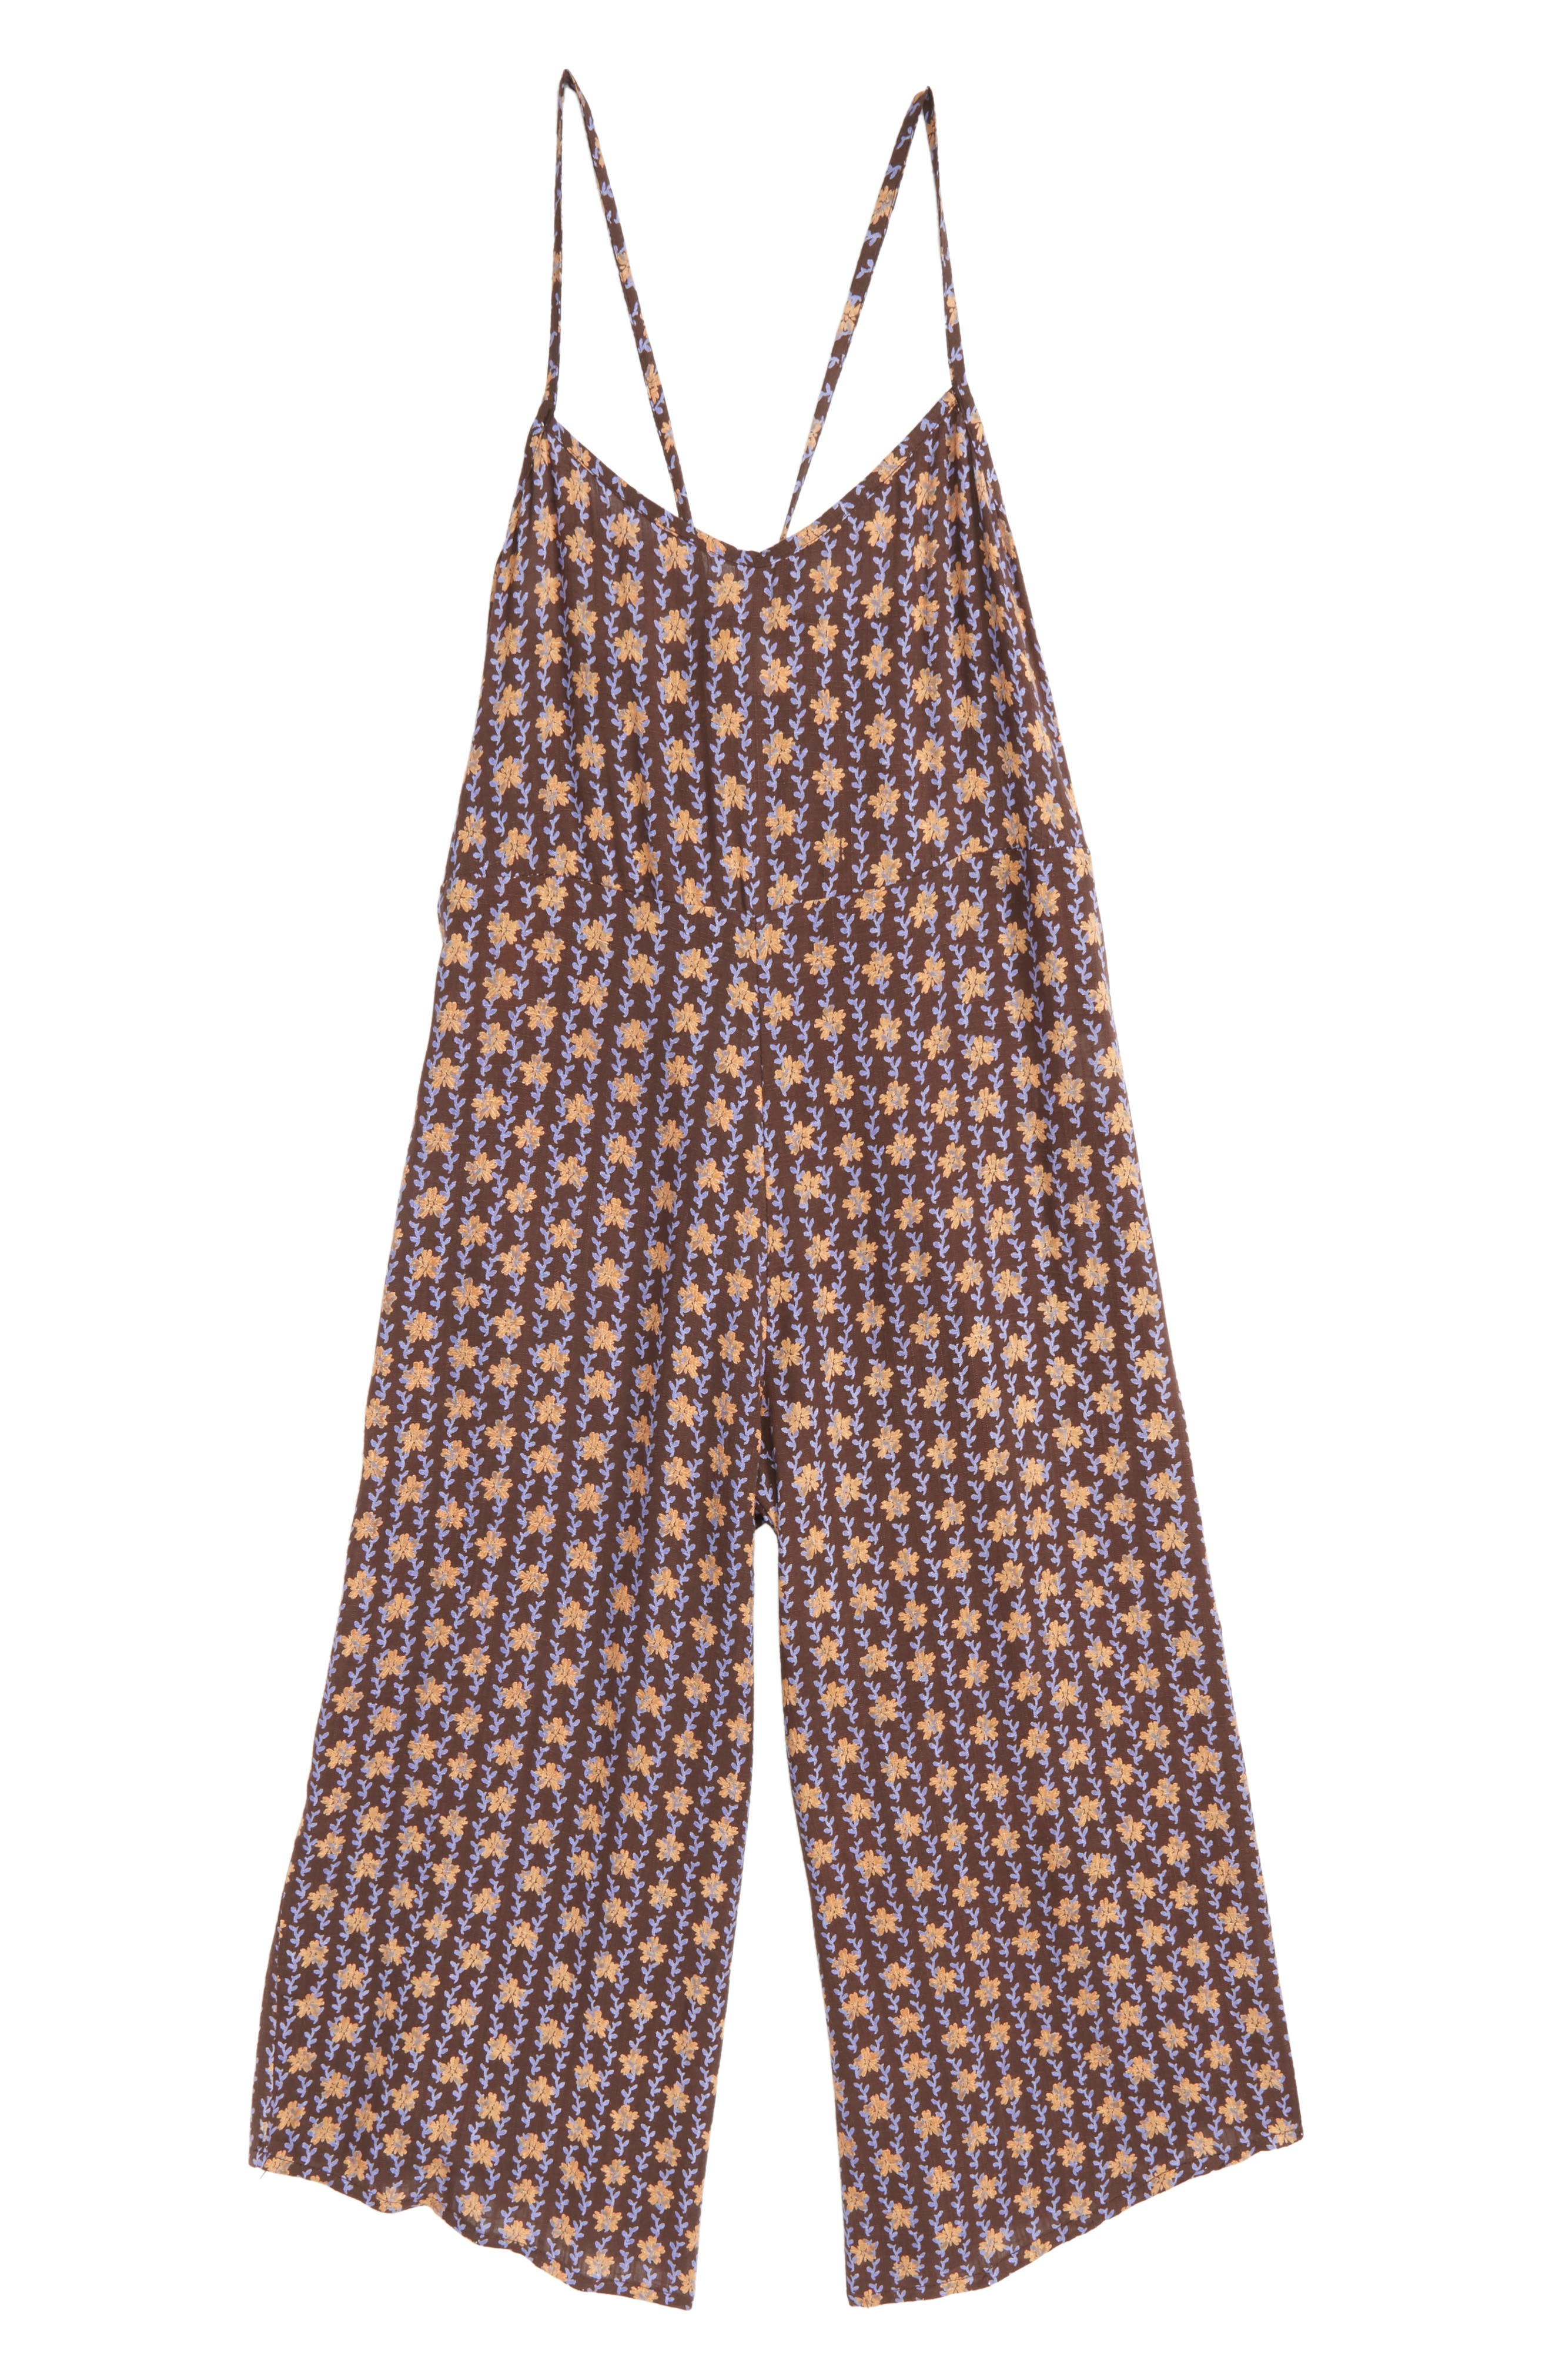 O'NEILL Darcy Floral Romper, Main, color, 003